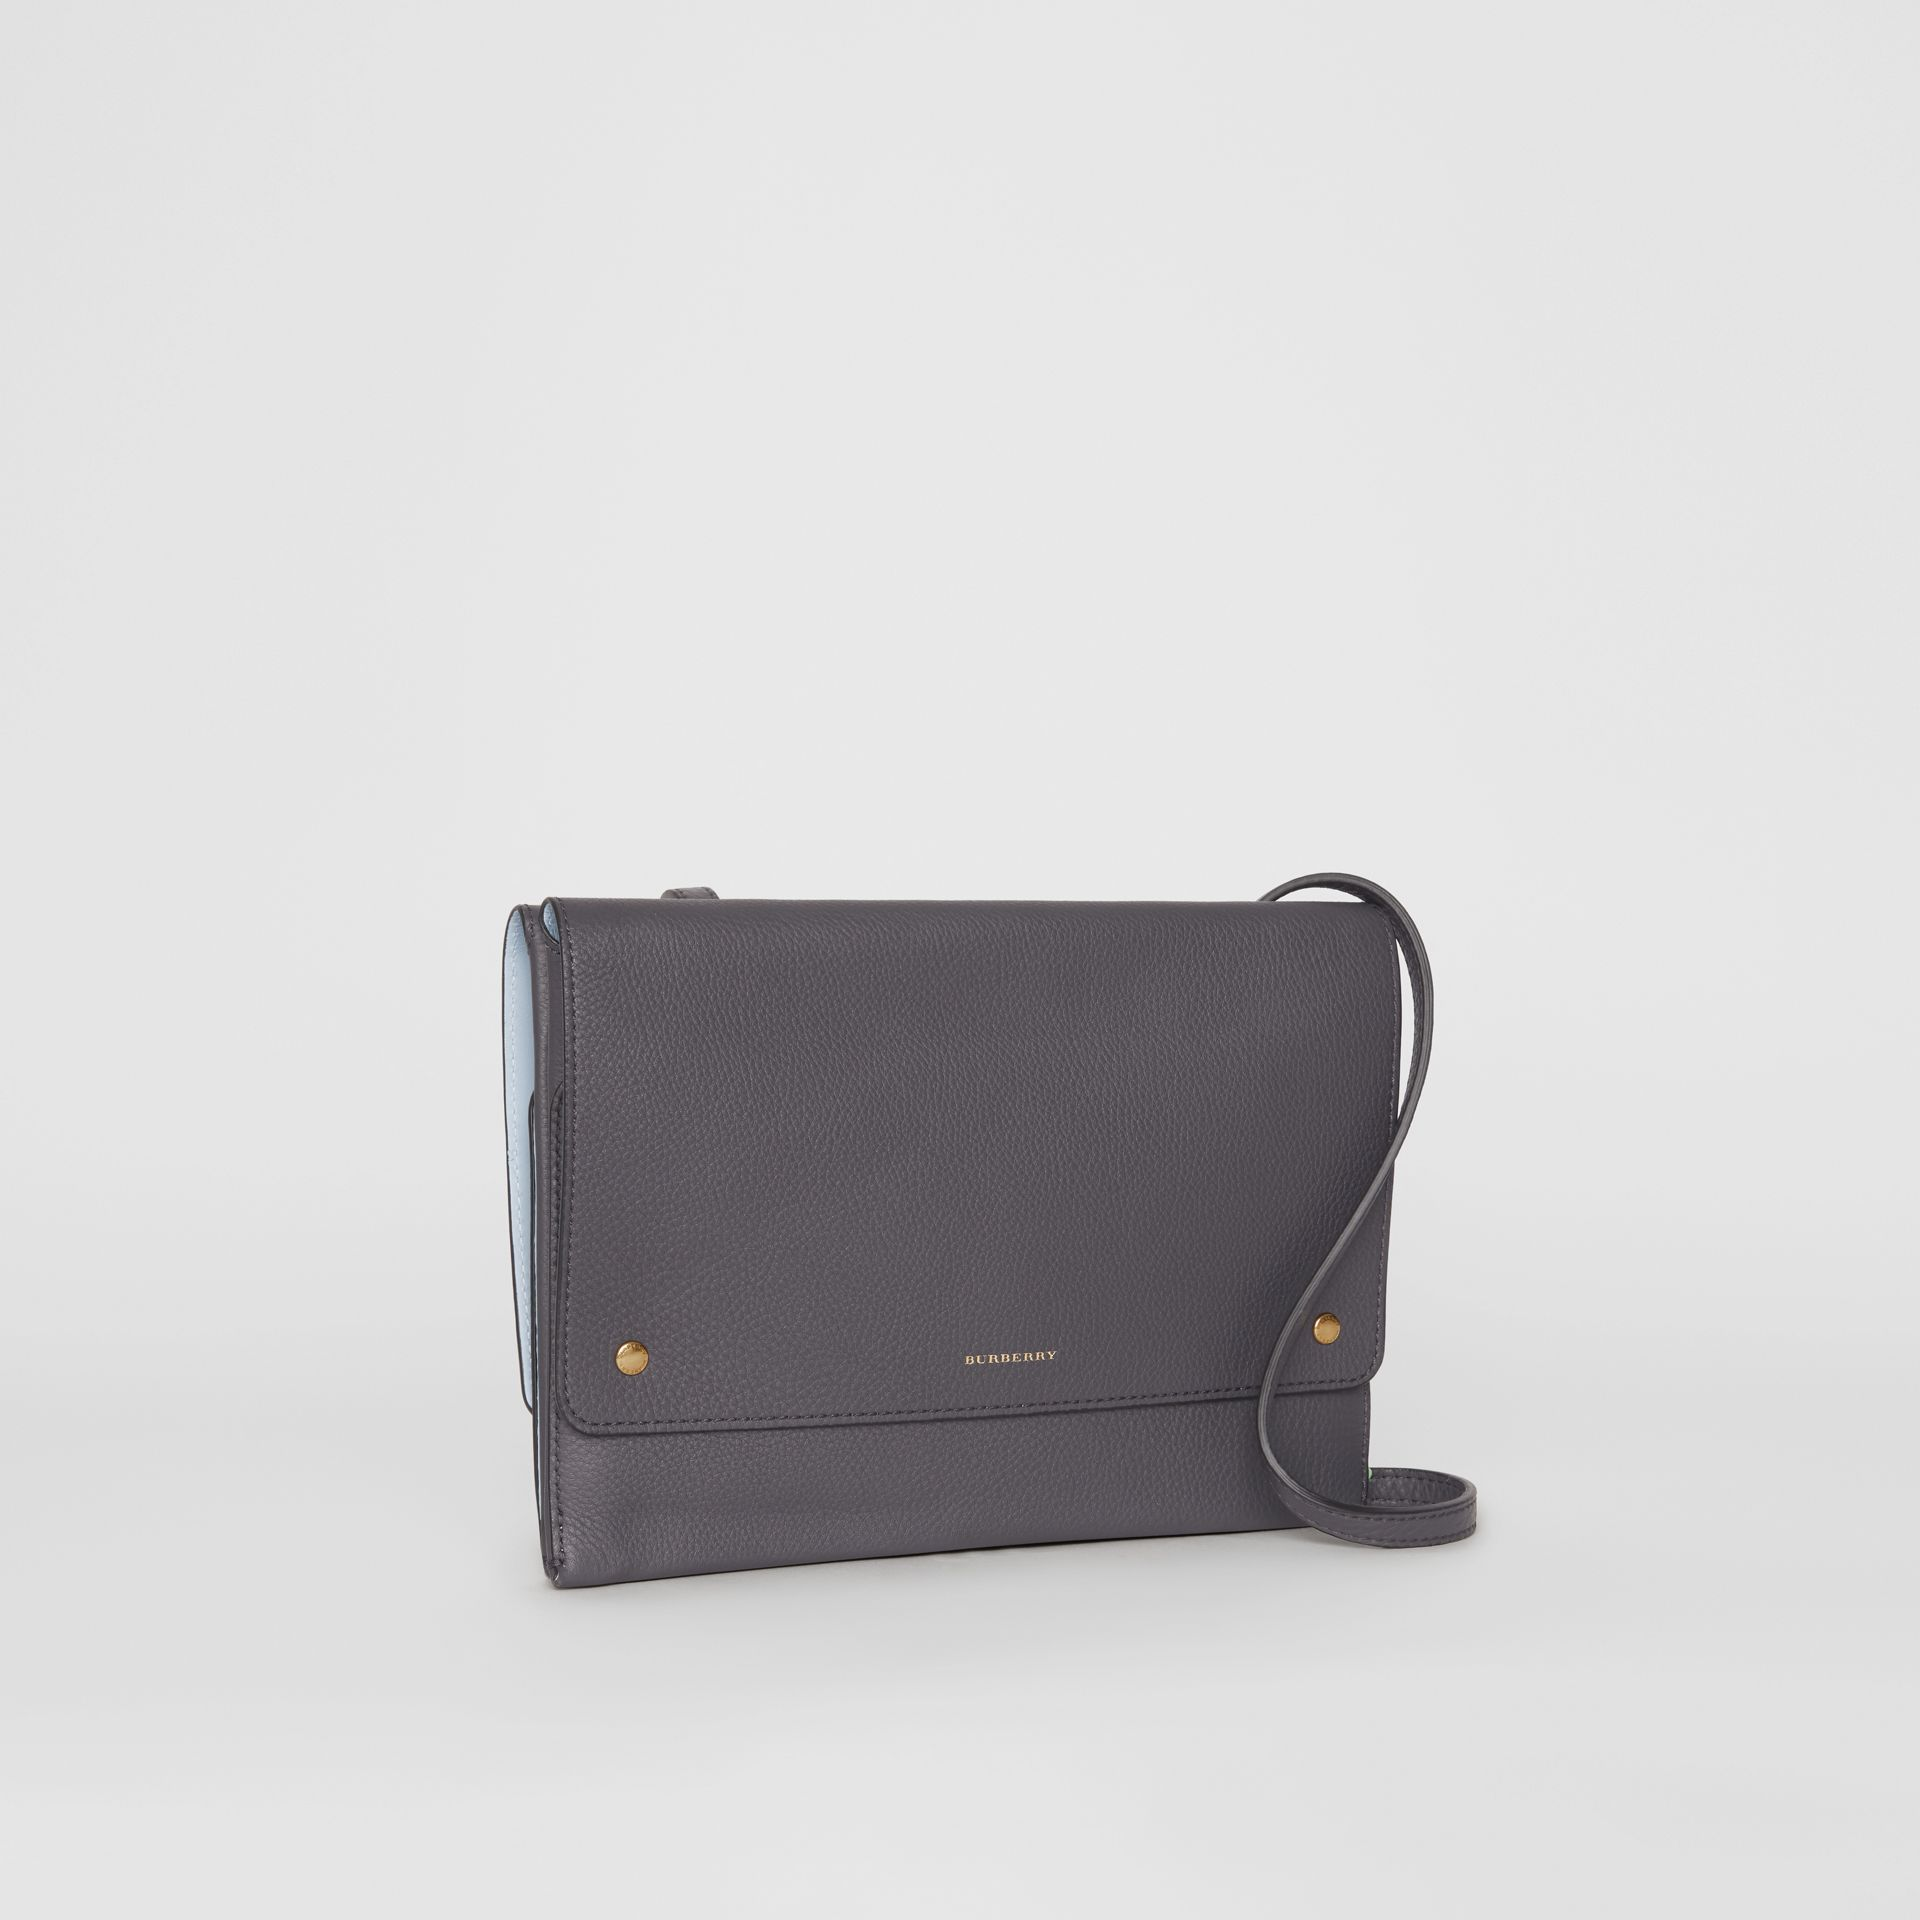 Leather Envelope Crossbody Bag in Charcoal Grey - Women | Burberry United Kingdom - gallery image 4